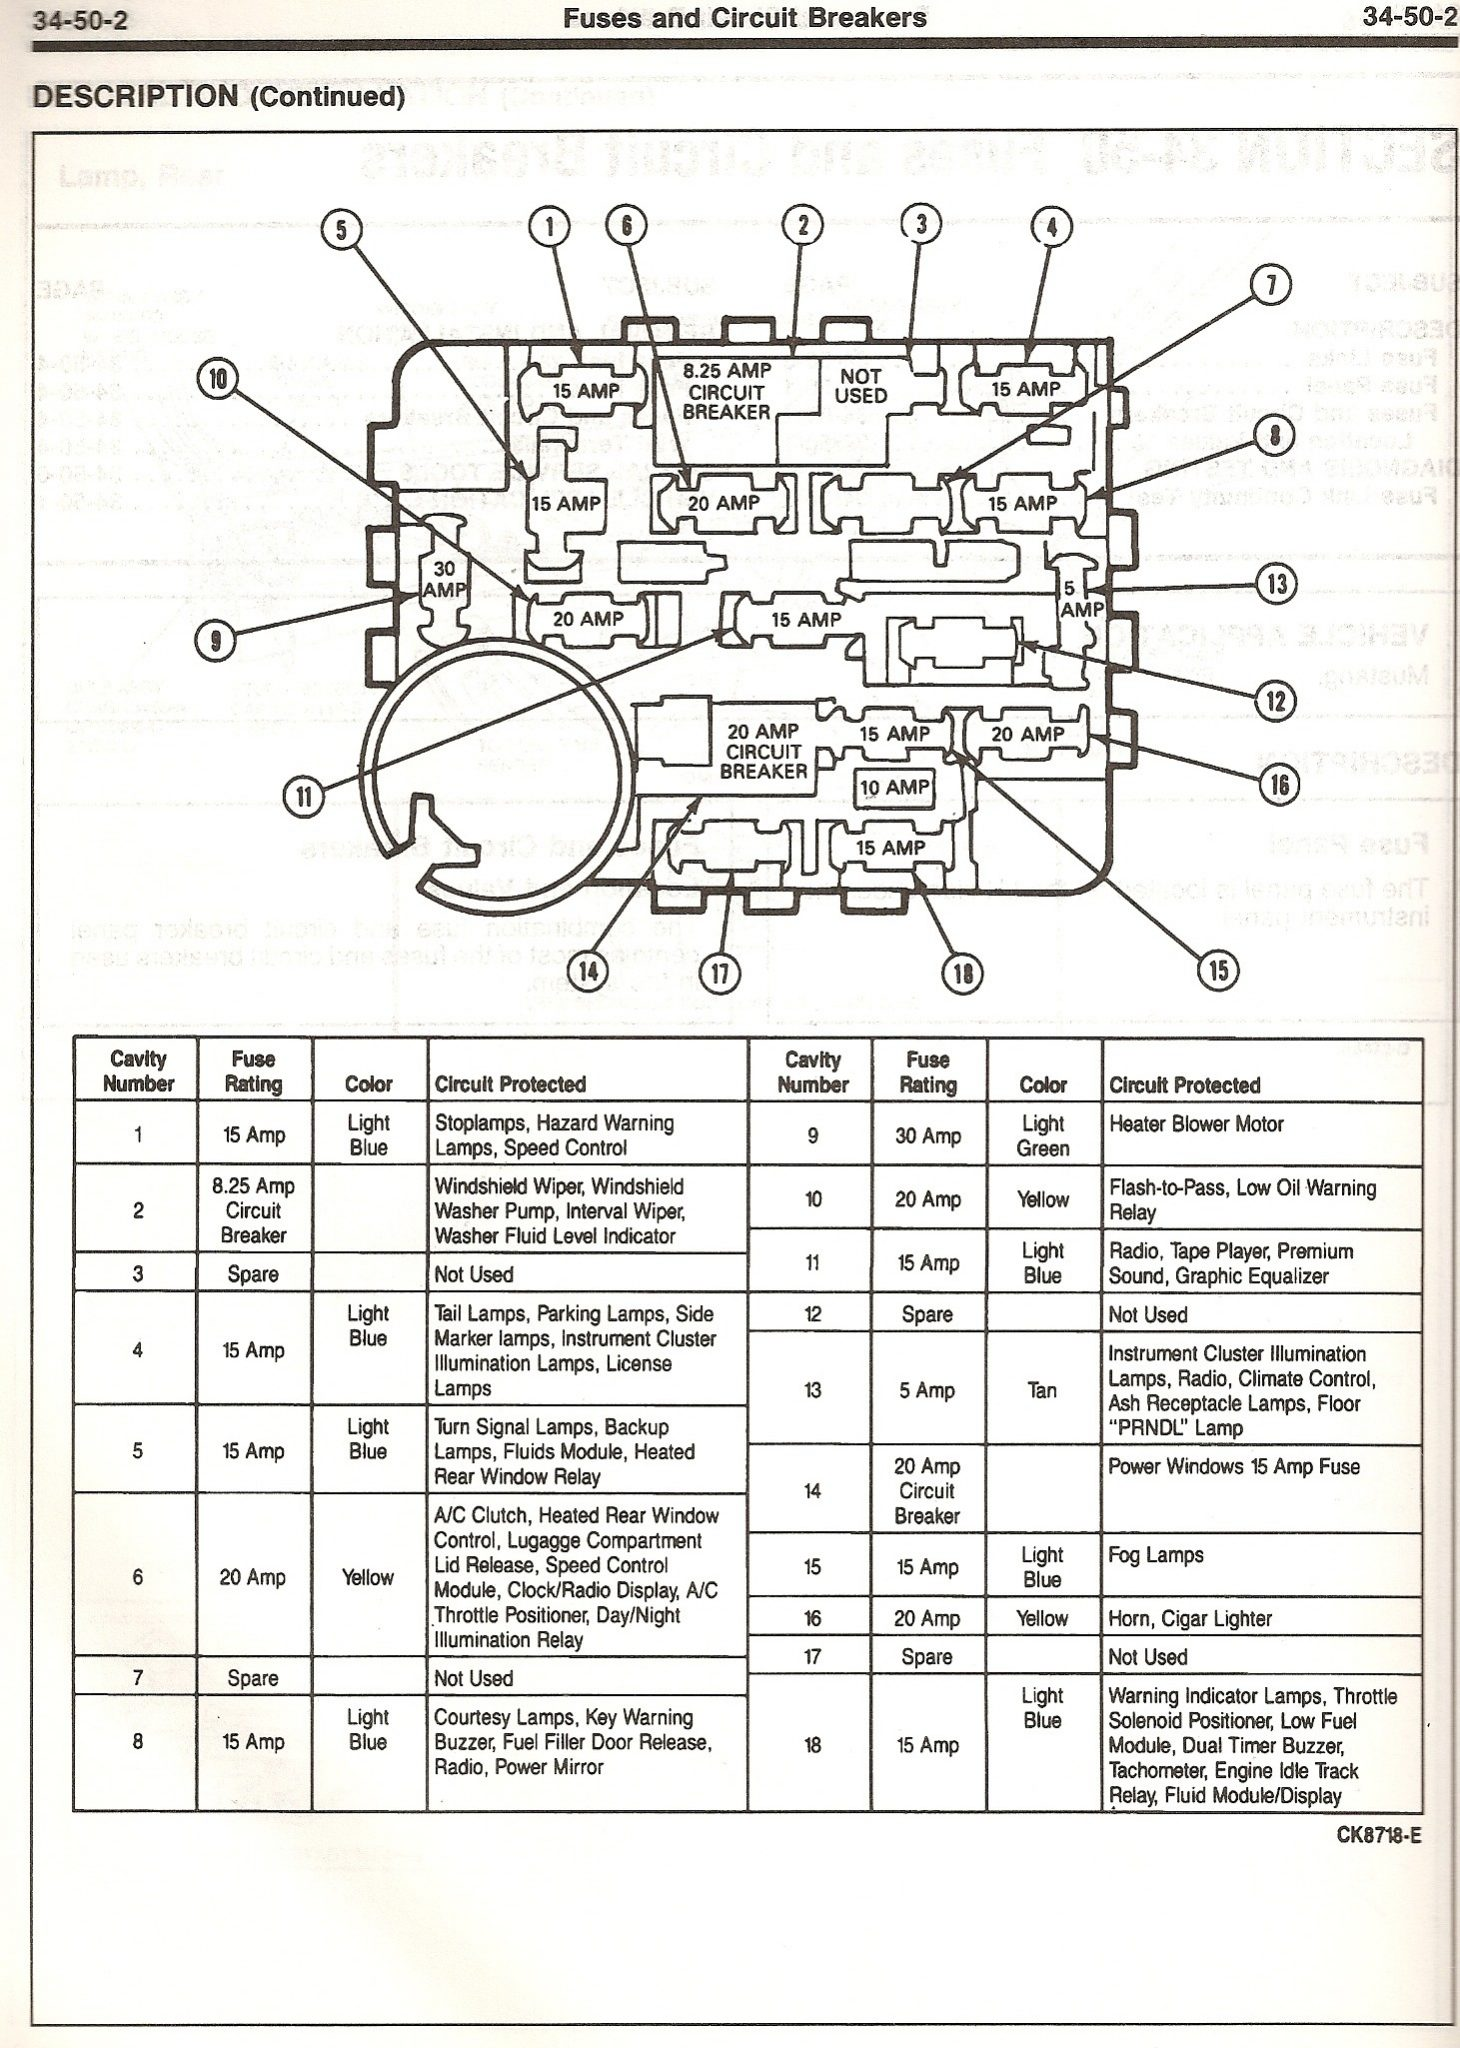 wiring diagram 90 gmc safari wiring diagrams and schematics gmc fuse box diagram wellnessarticles wiring diagram